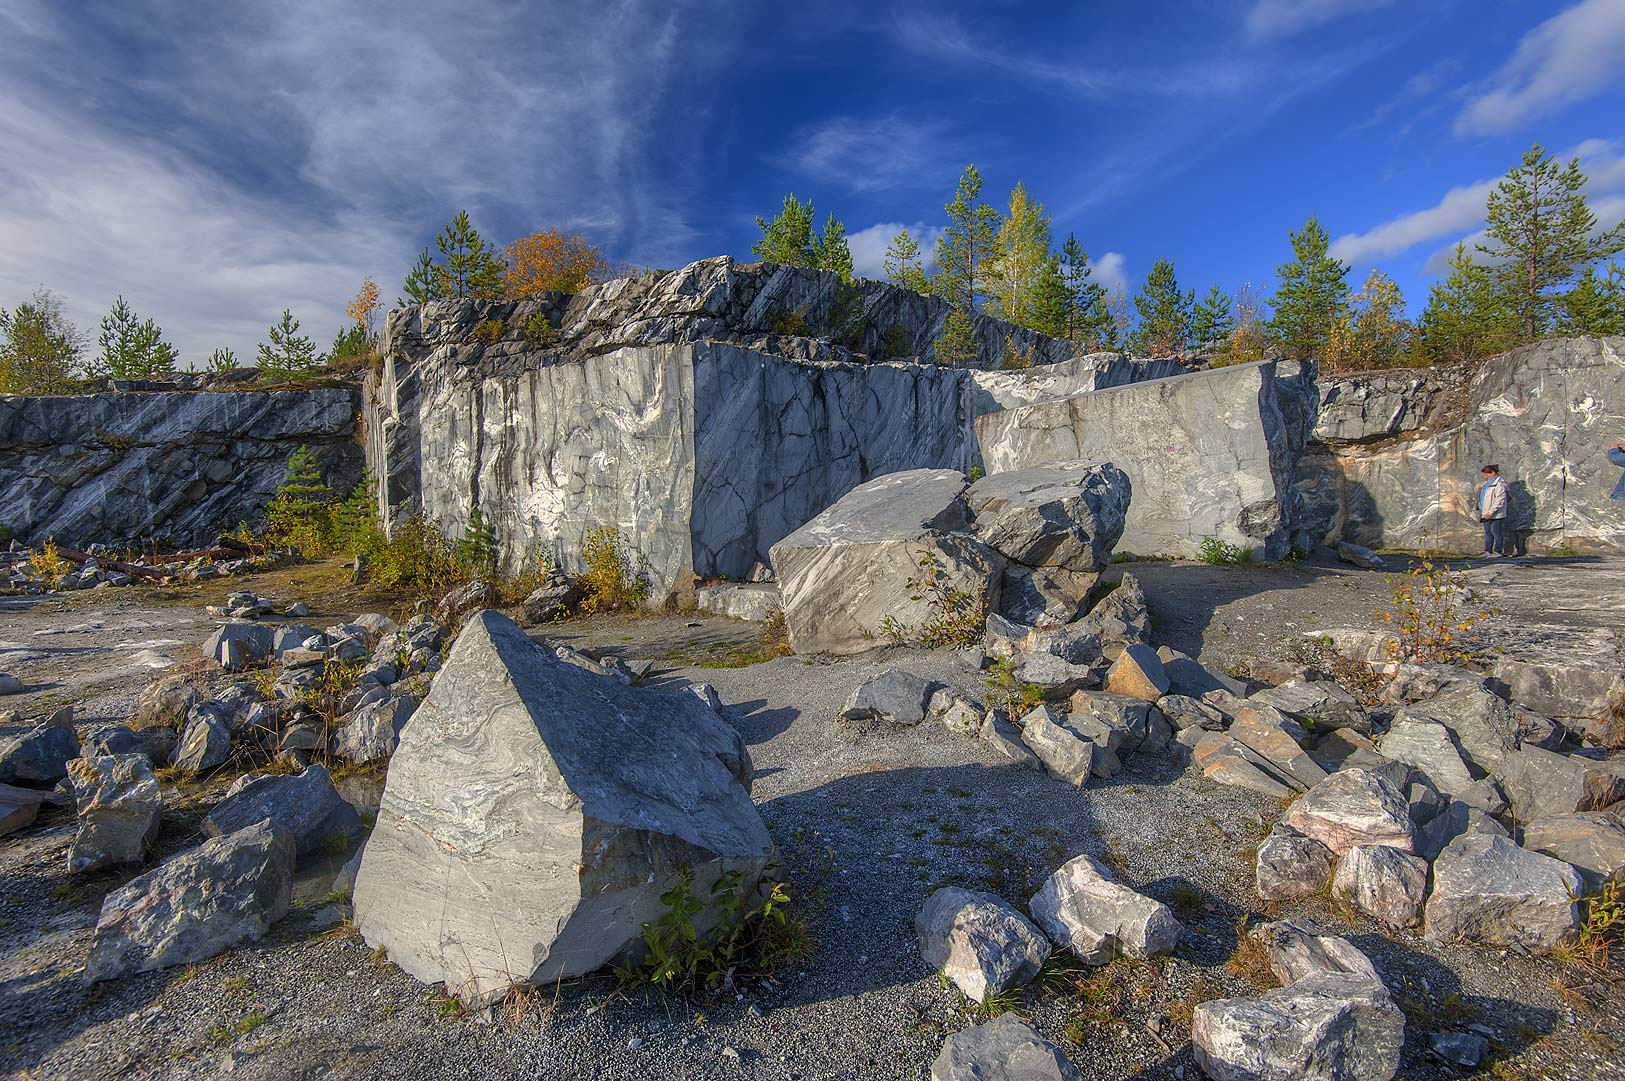 Marble fragments in abandoned marble quarry in Ruskeala Mountain Park. Karelia, Russia